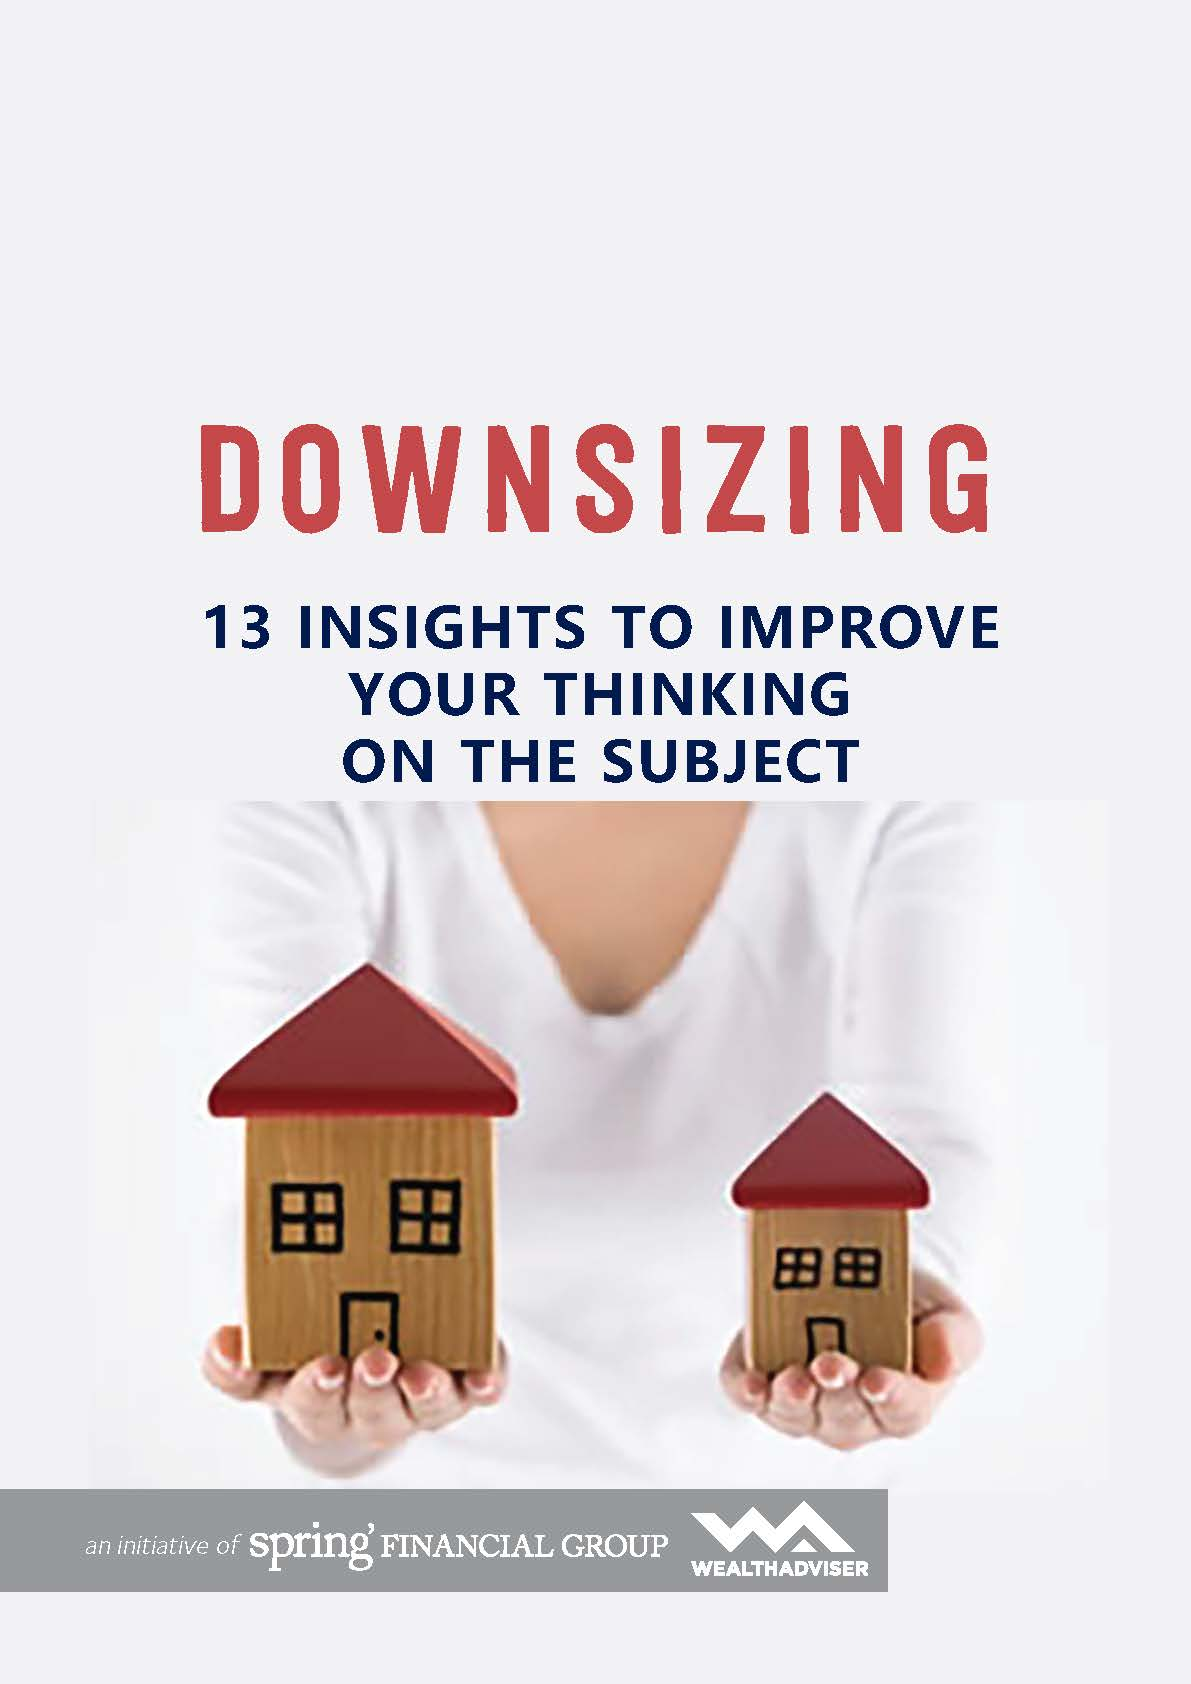 Downsizing - 13 Insights to Improve Your Thinking on the Subject - eBook cover